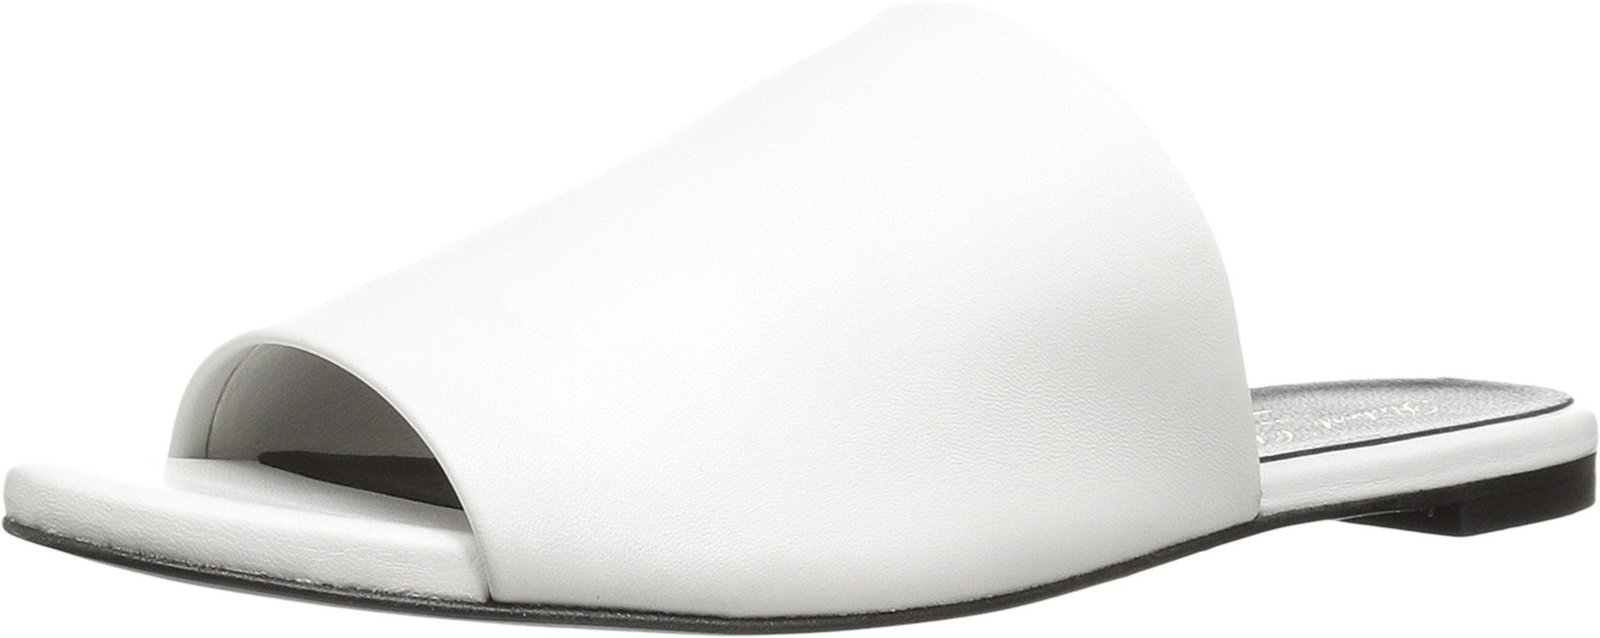 Robert Clergerie Women's Gatom White Nappa Shoe